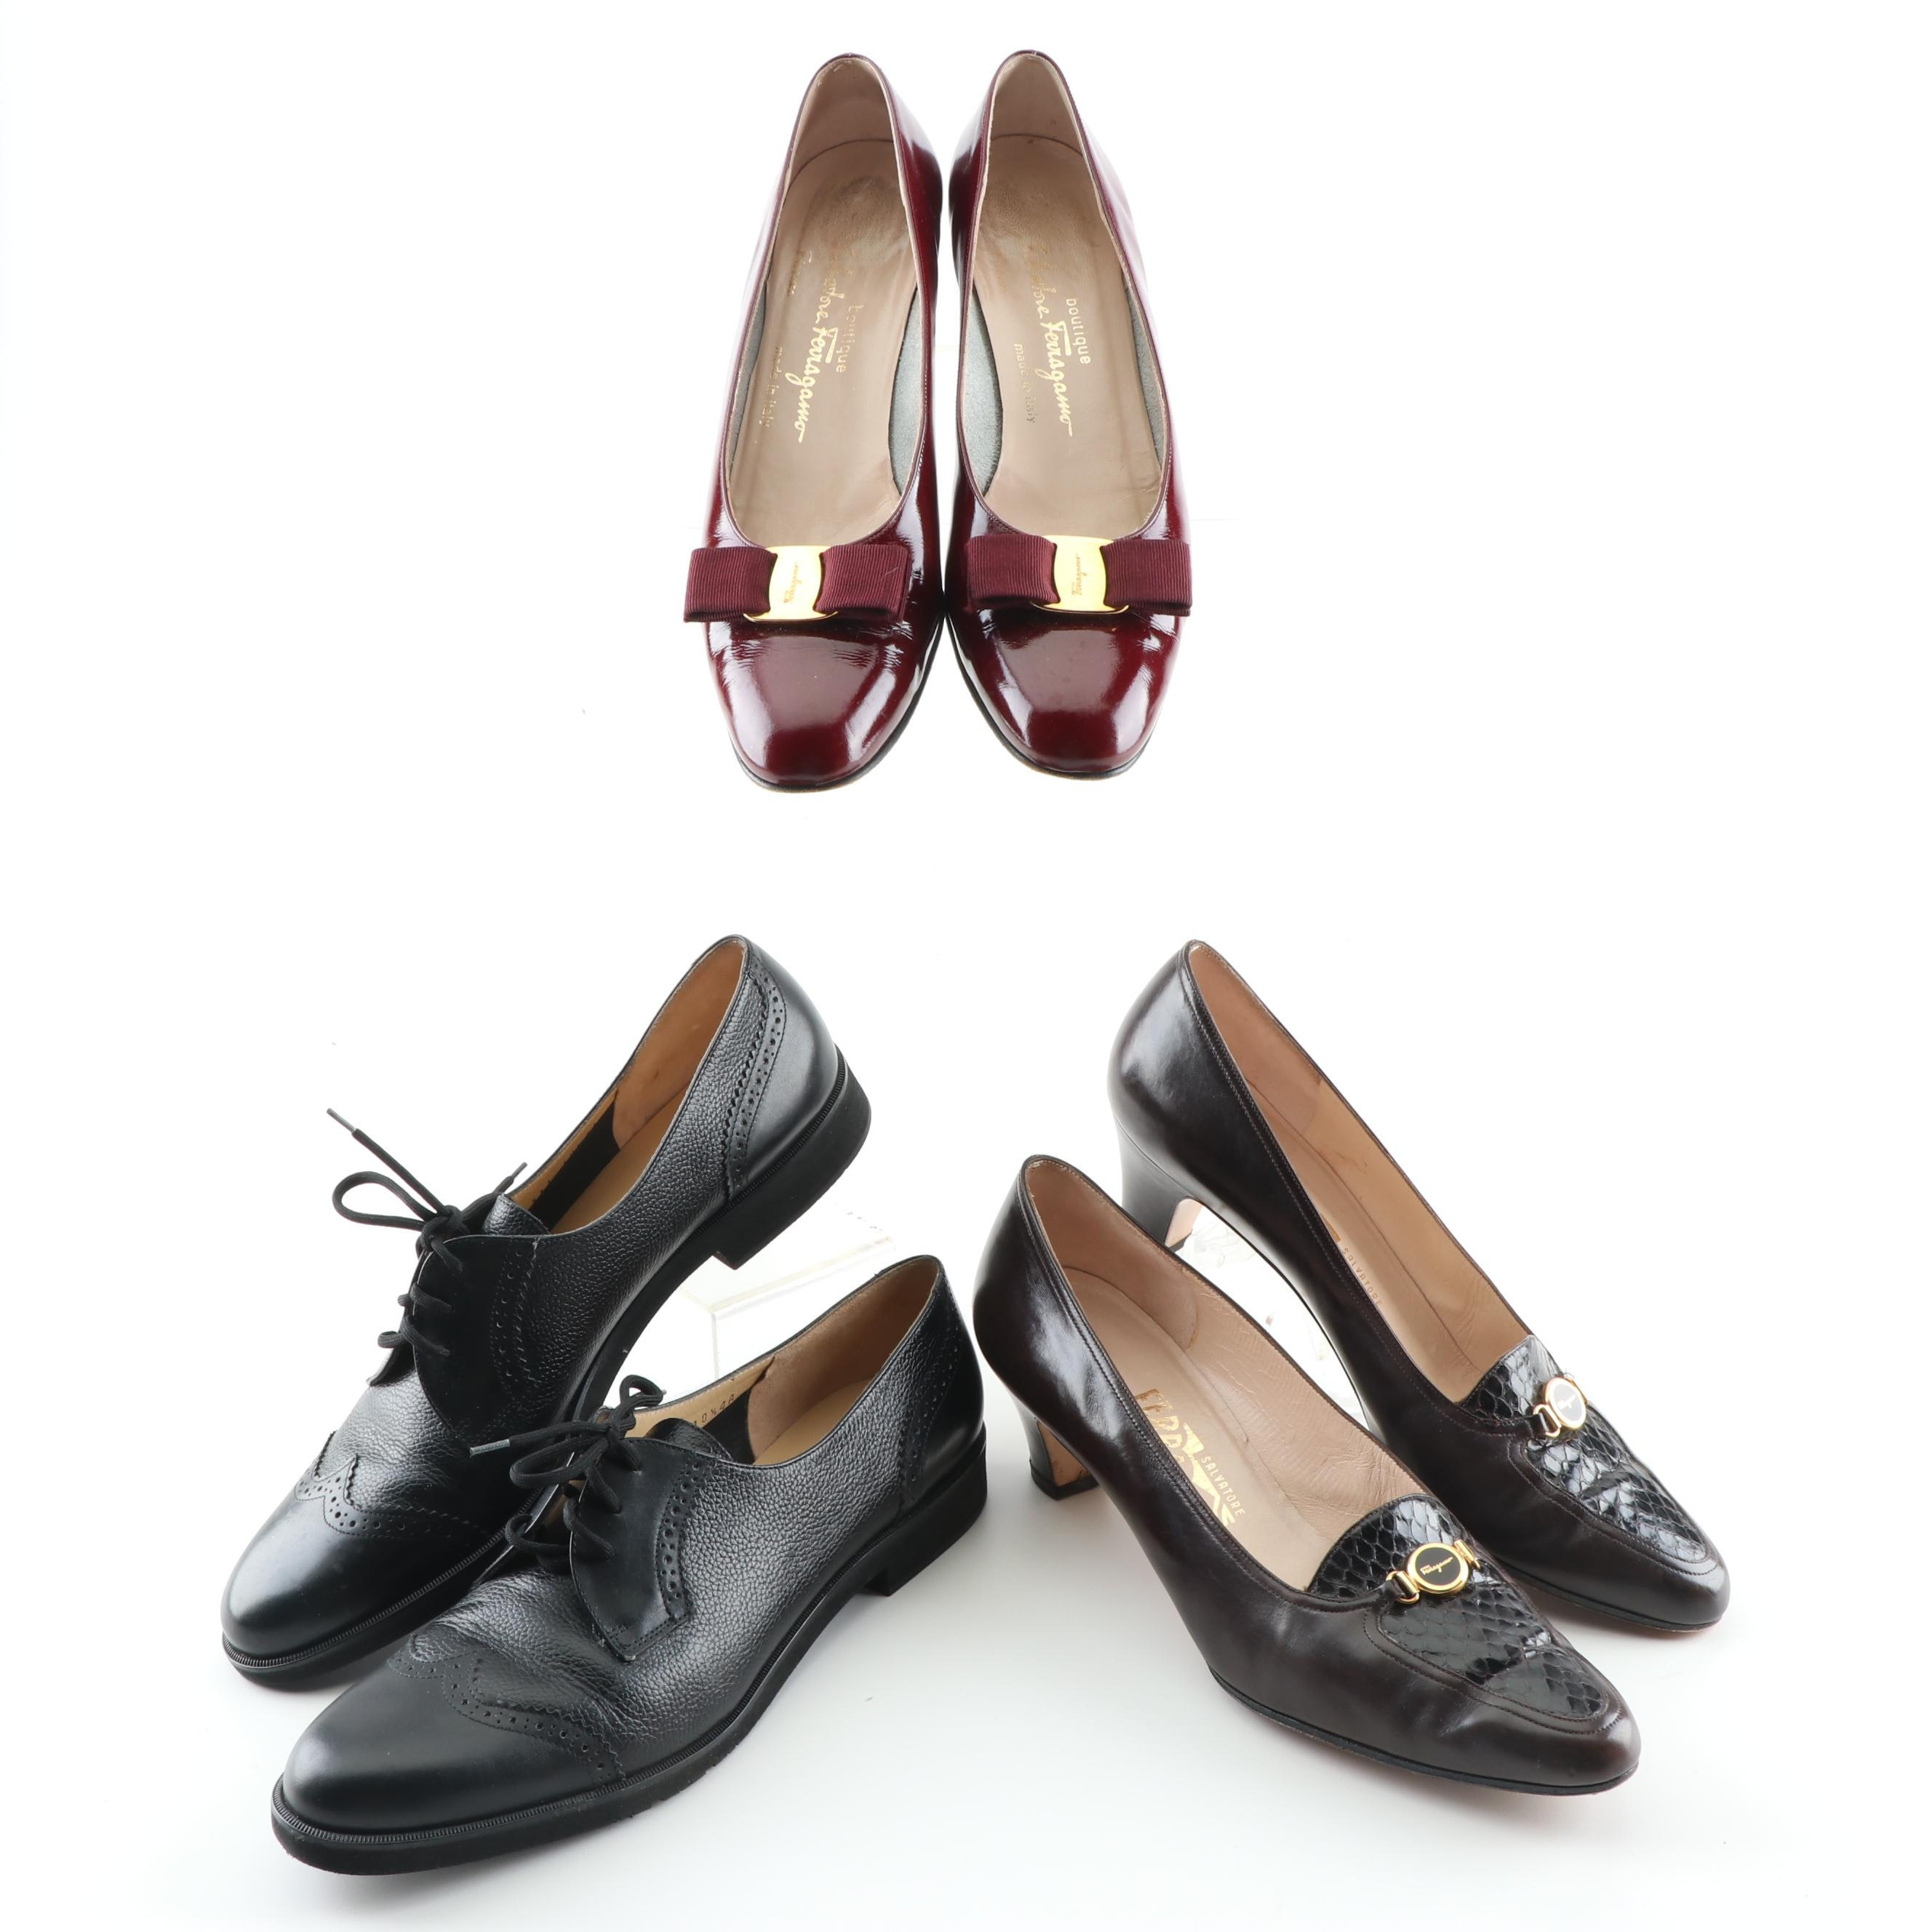 Women's Salvatore Ferragamo Leather Pumps and Wingtip Oxfords